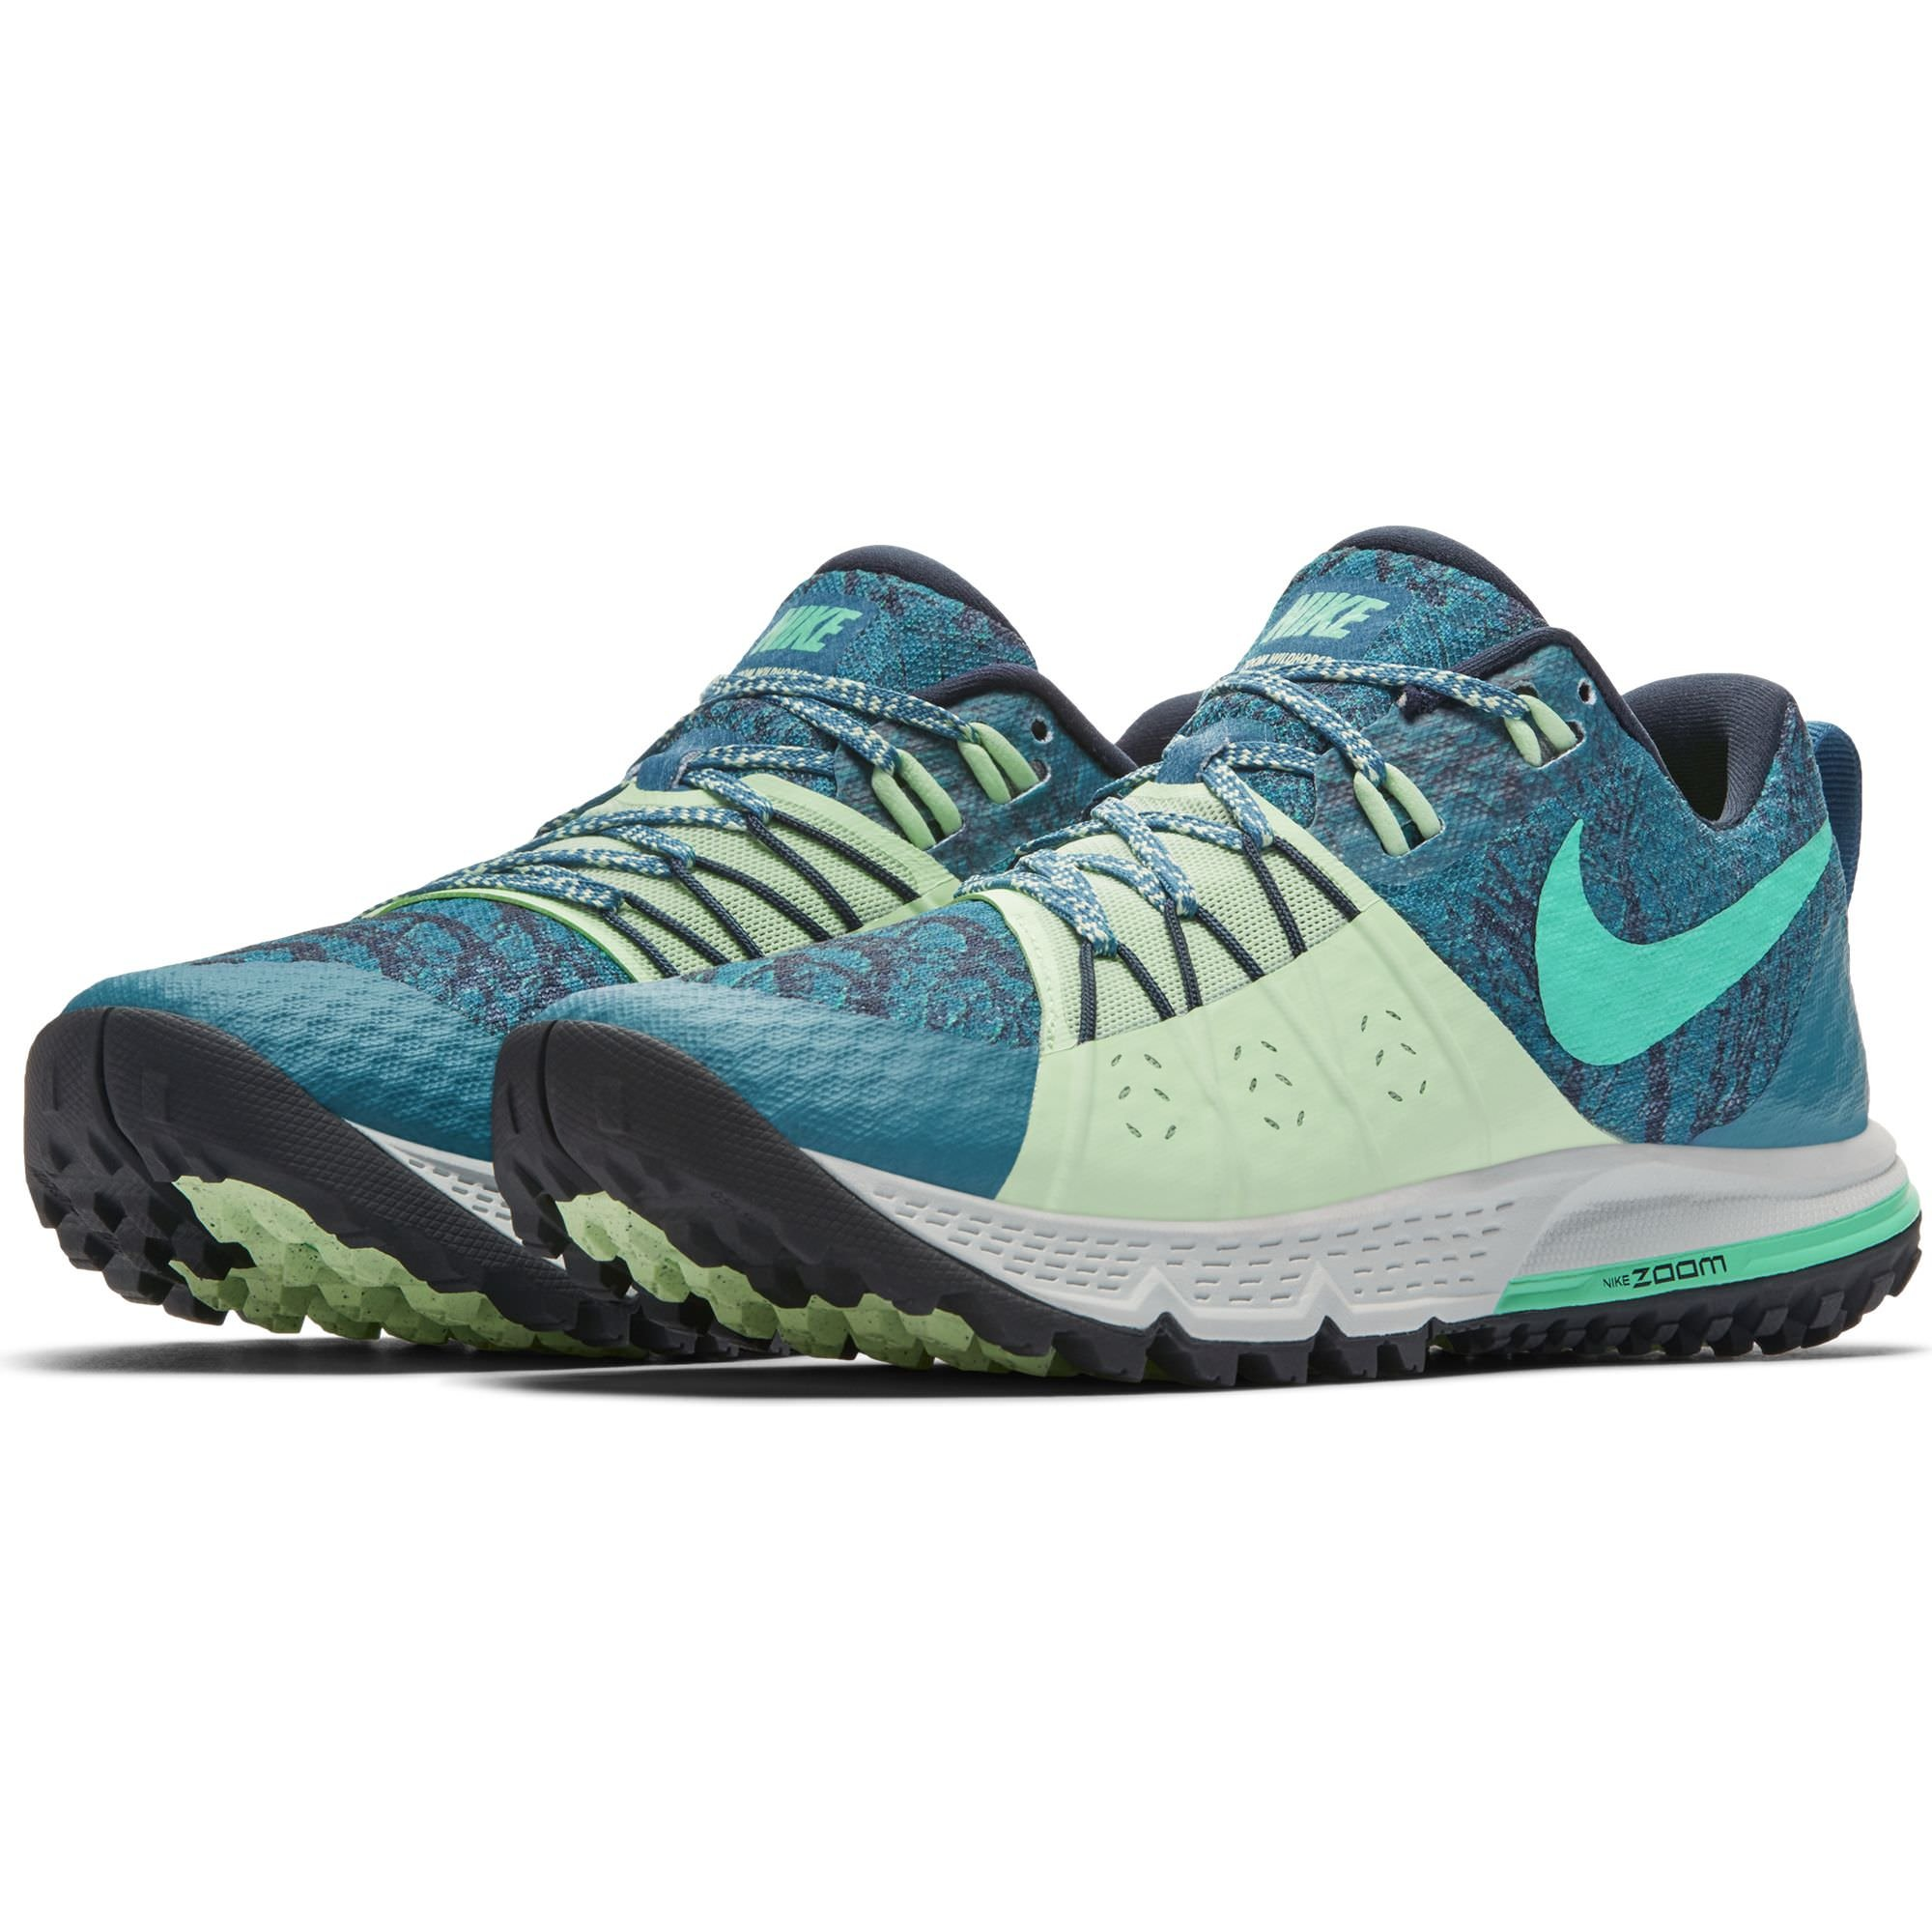 NIKE Women's Air Zoom Wildhorse 4 Running Shoe Green Abyss/Menta-Obsidian-Vapor Green 6.5 by NIKE (Image #2)